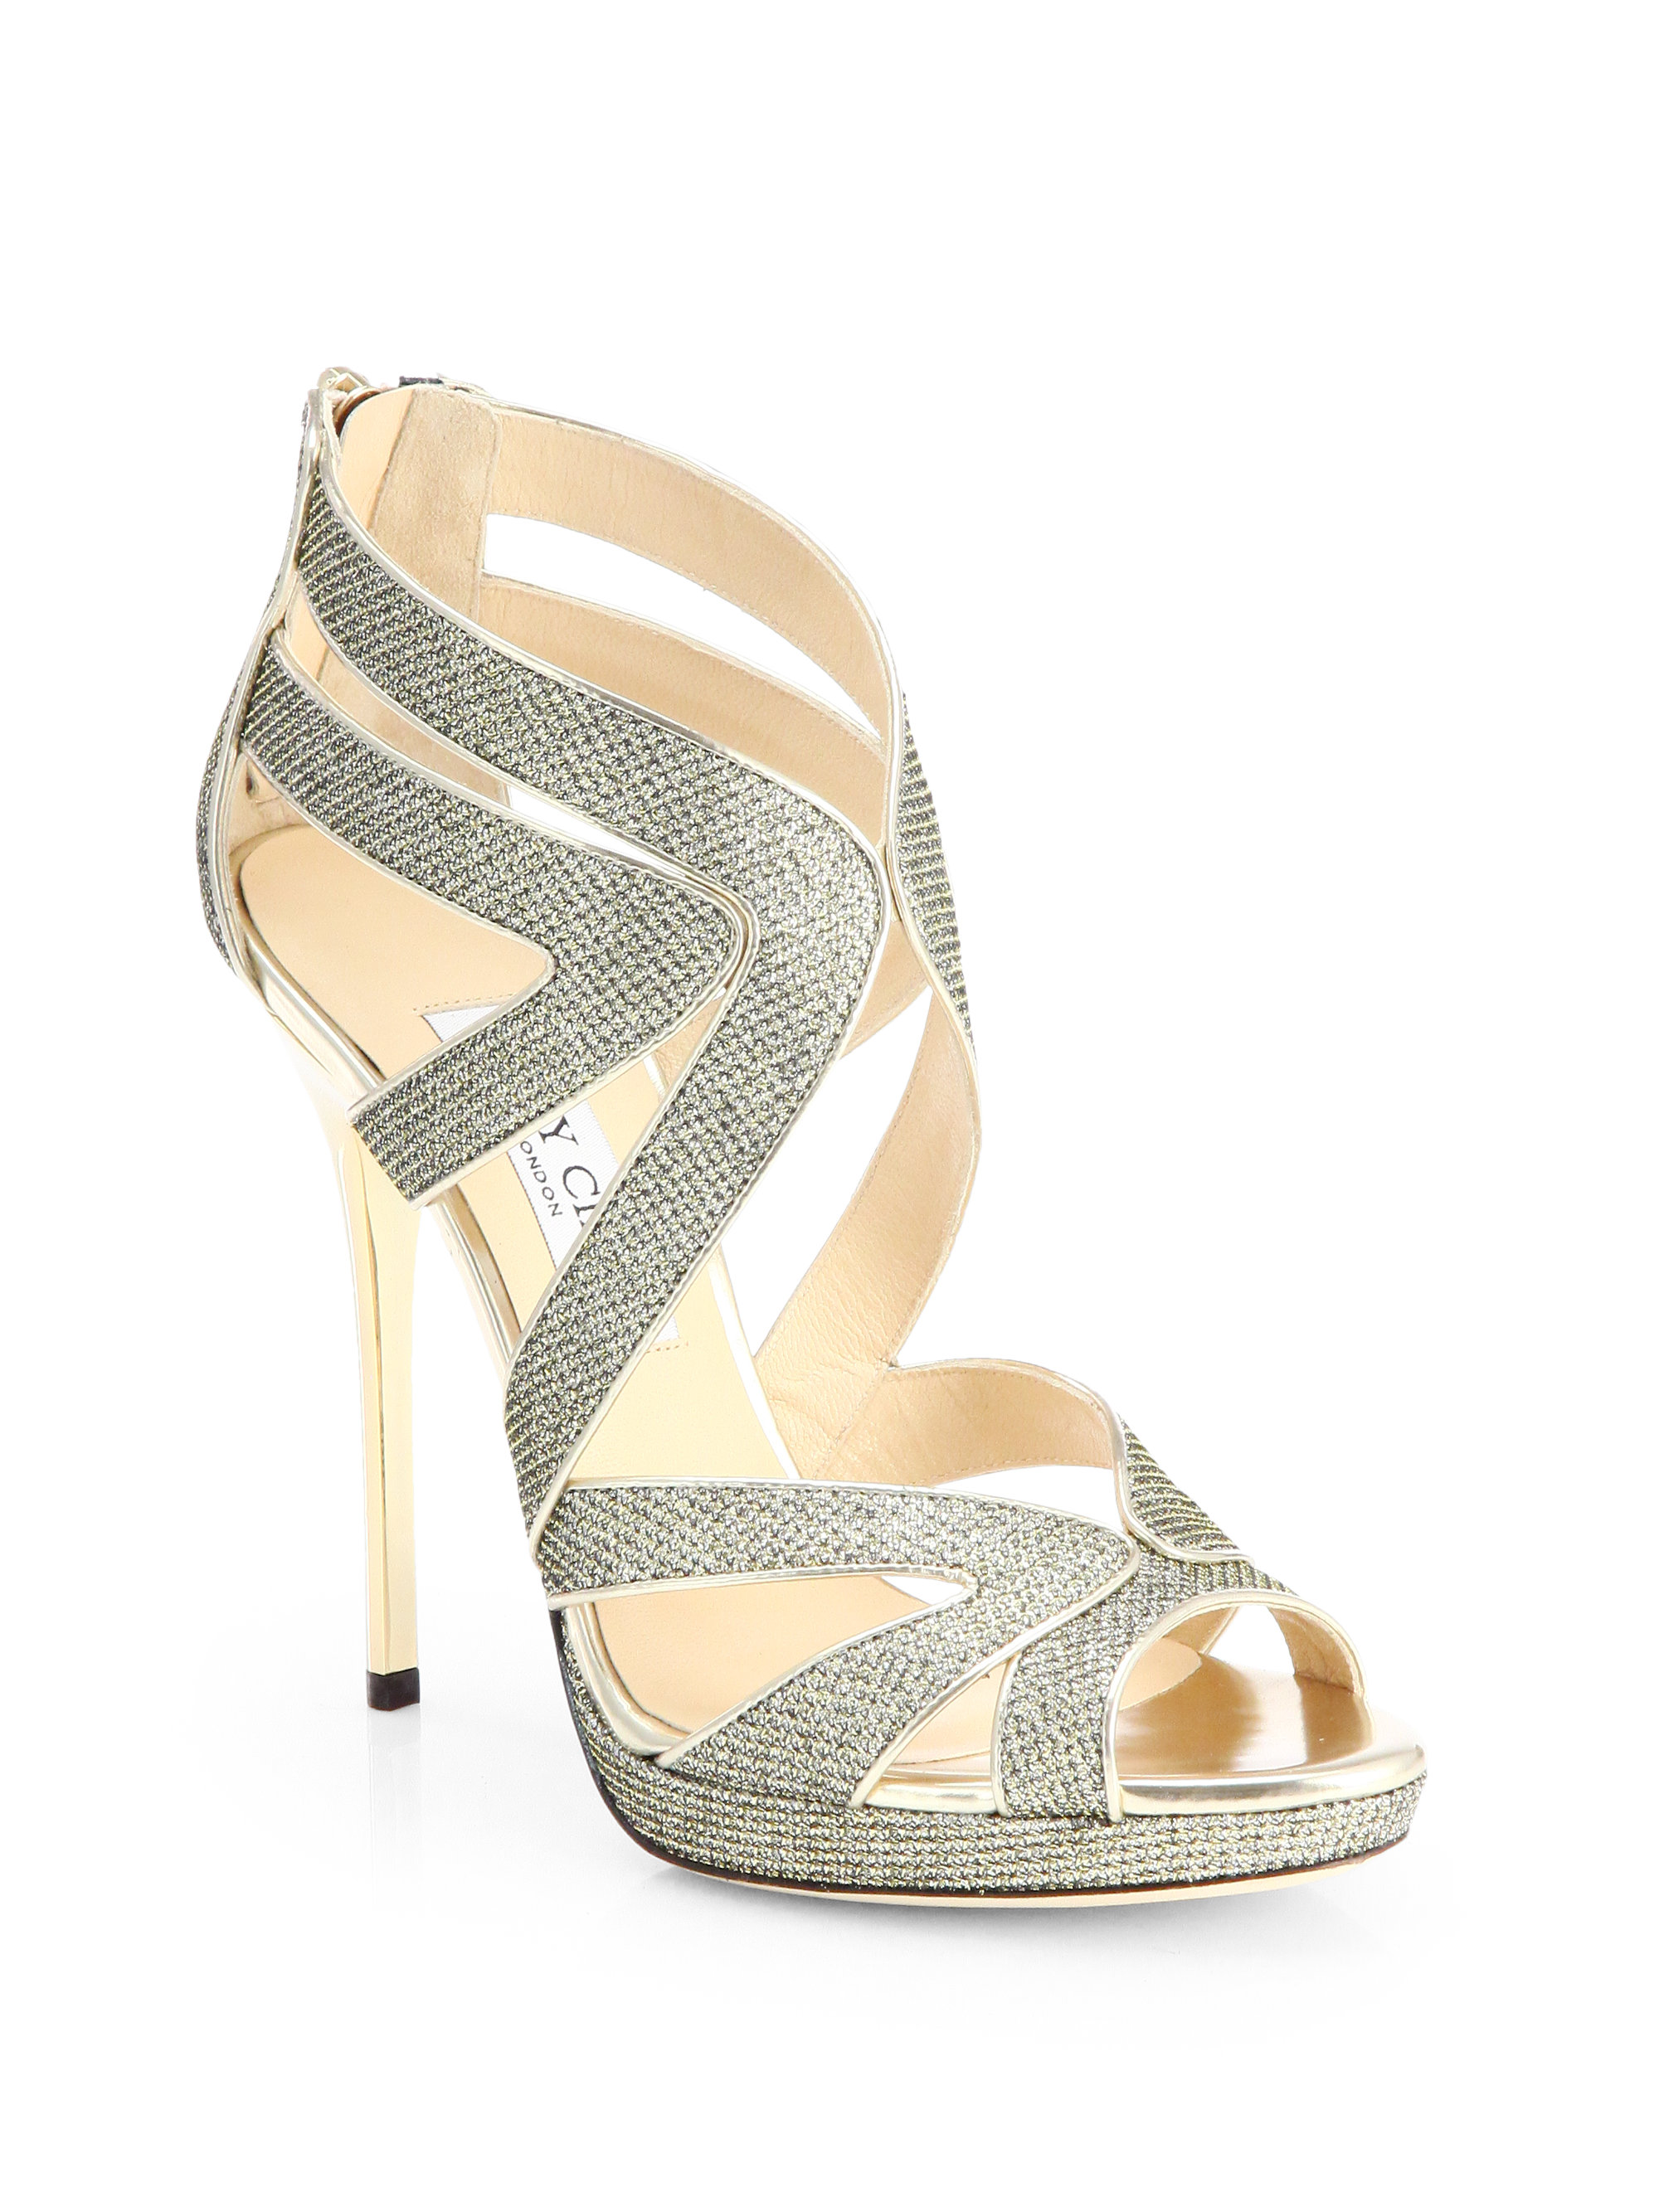 284efce18555 ... best price lyst jimmy choo collar glitter lame platform sandals in  metallic 87bb5 981ad